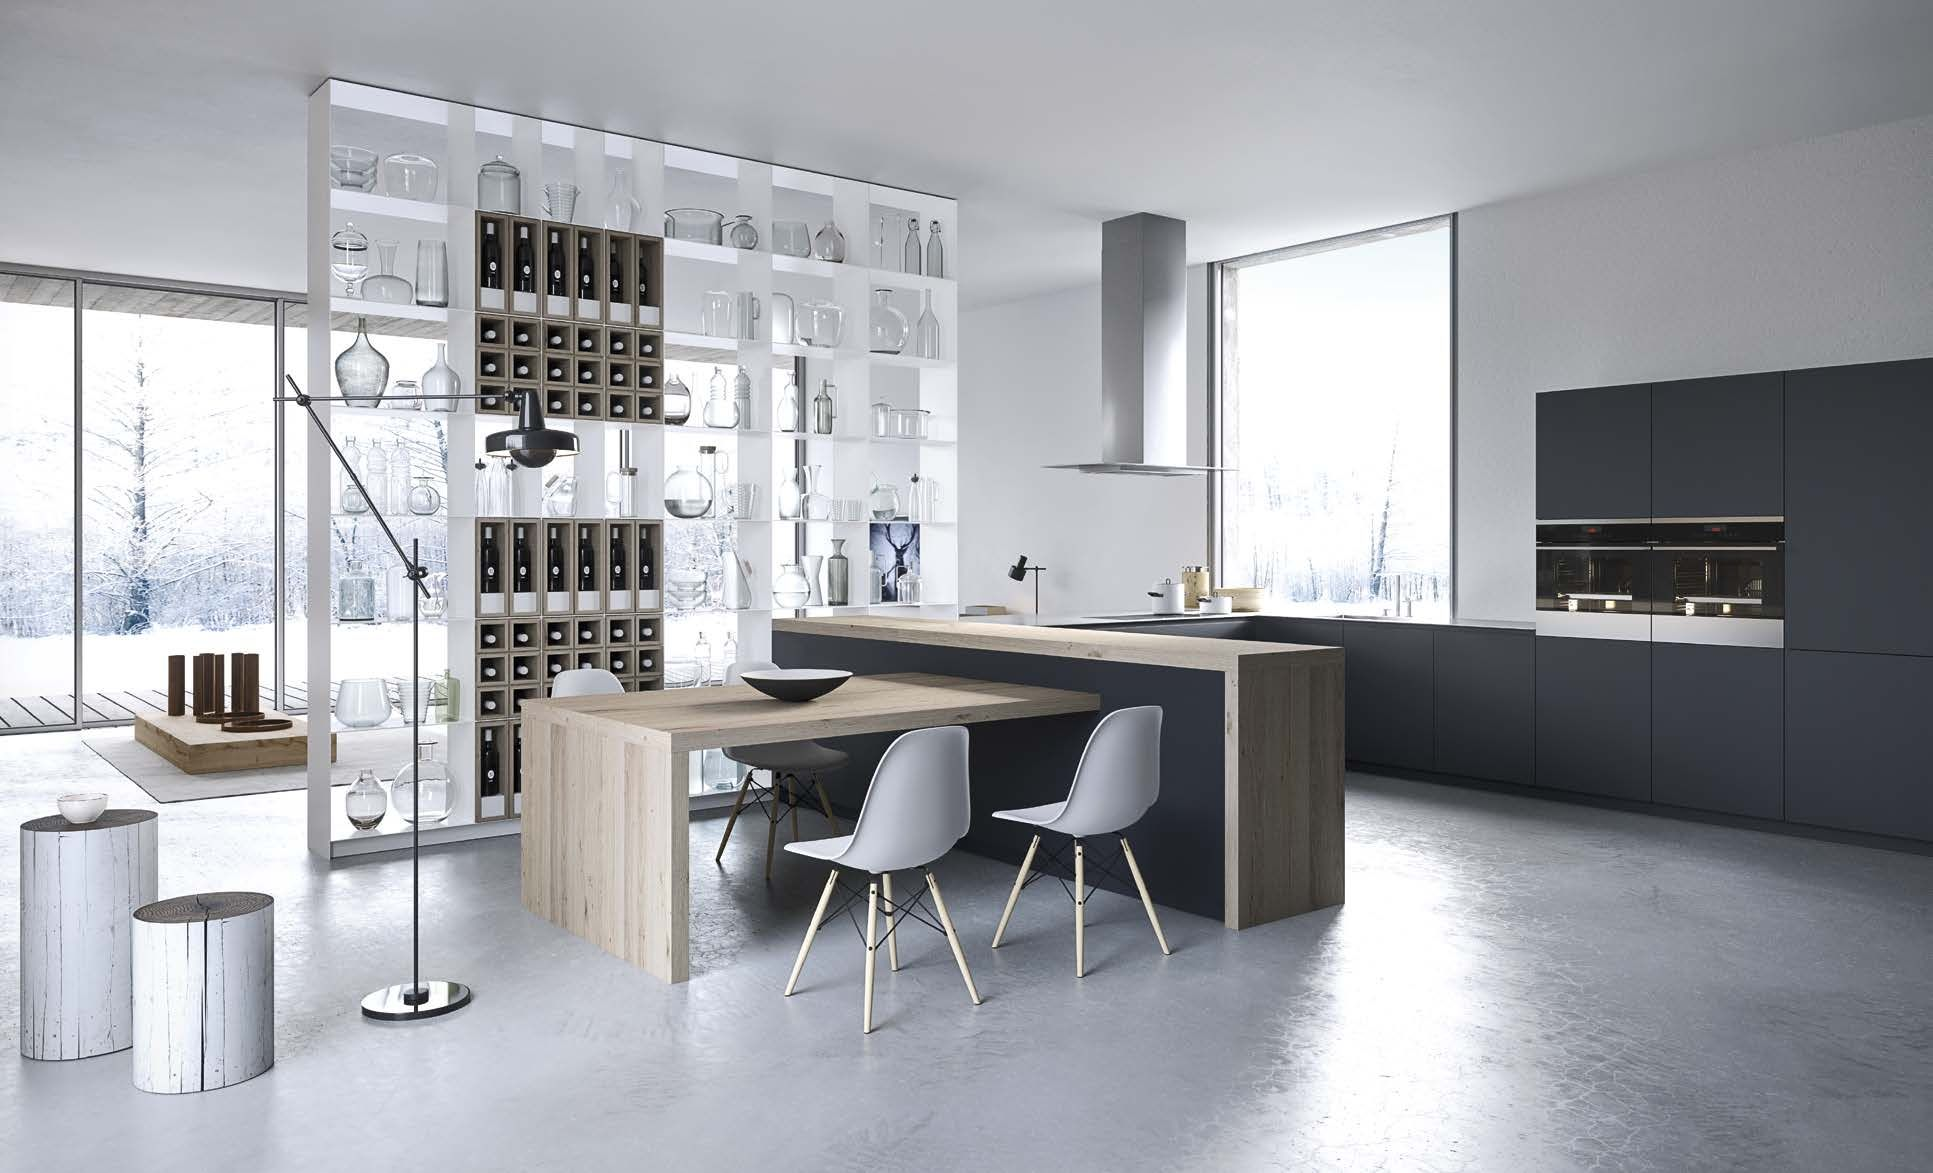 The Cut Kitchen - a full view of the #kitchen #home #design